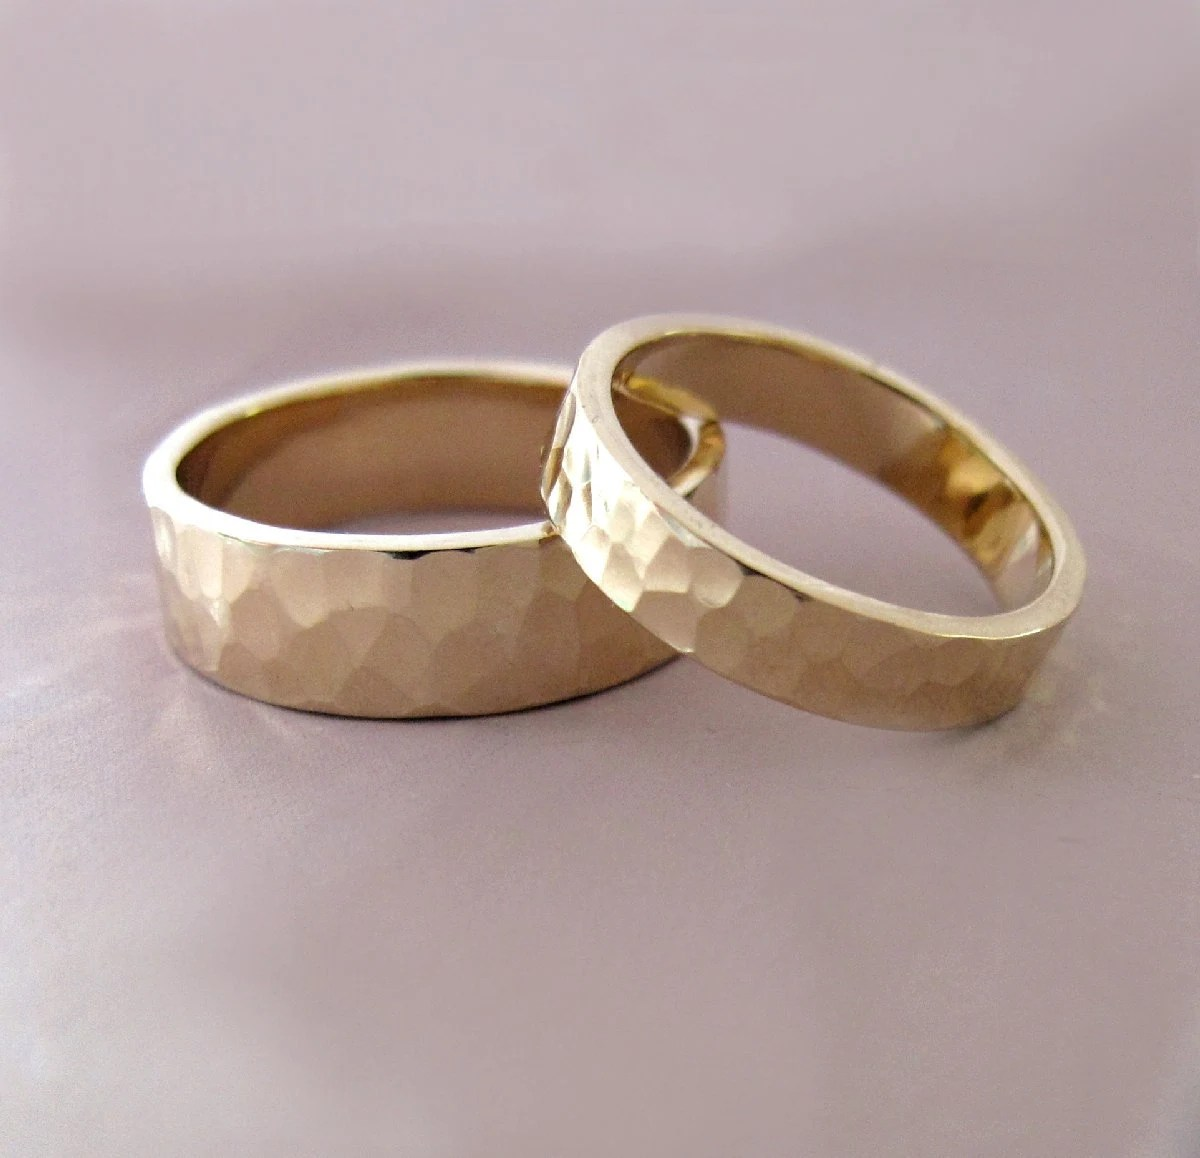 14k gold wedding ring set of two hand gold wedding ring sets zoom